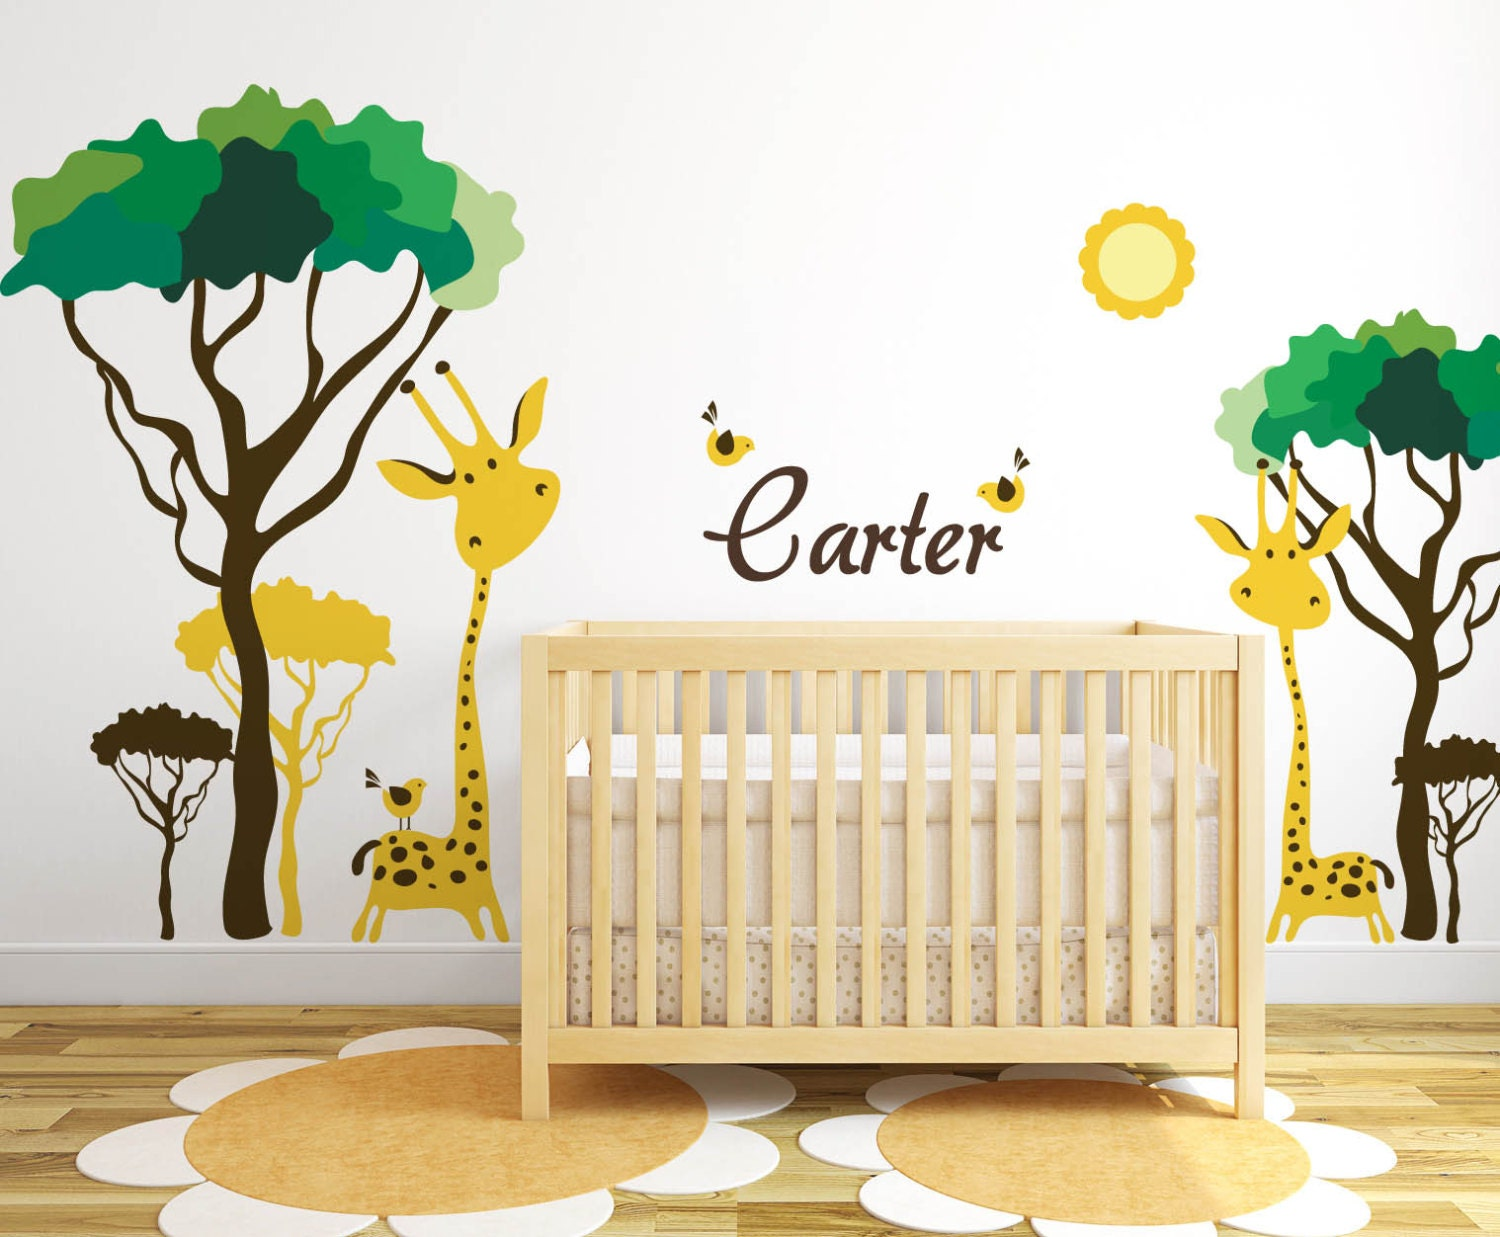 Baby nursery ideas safari giraffe and birds decals for walls for Baby name nursery decoration